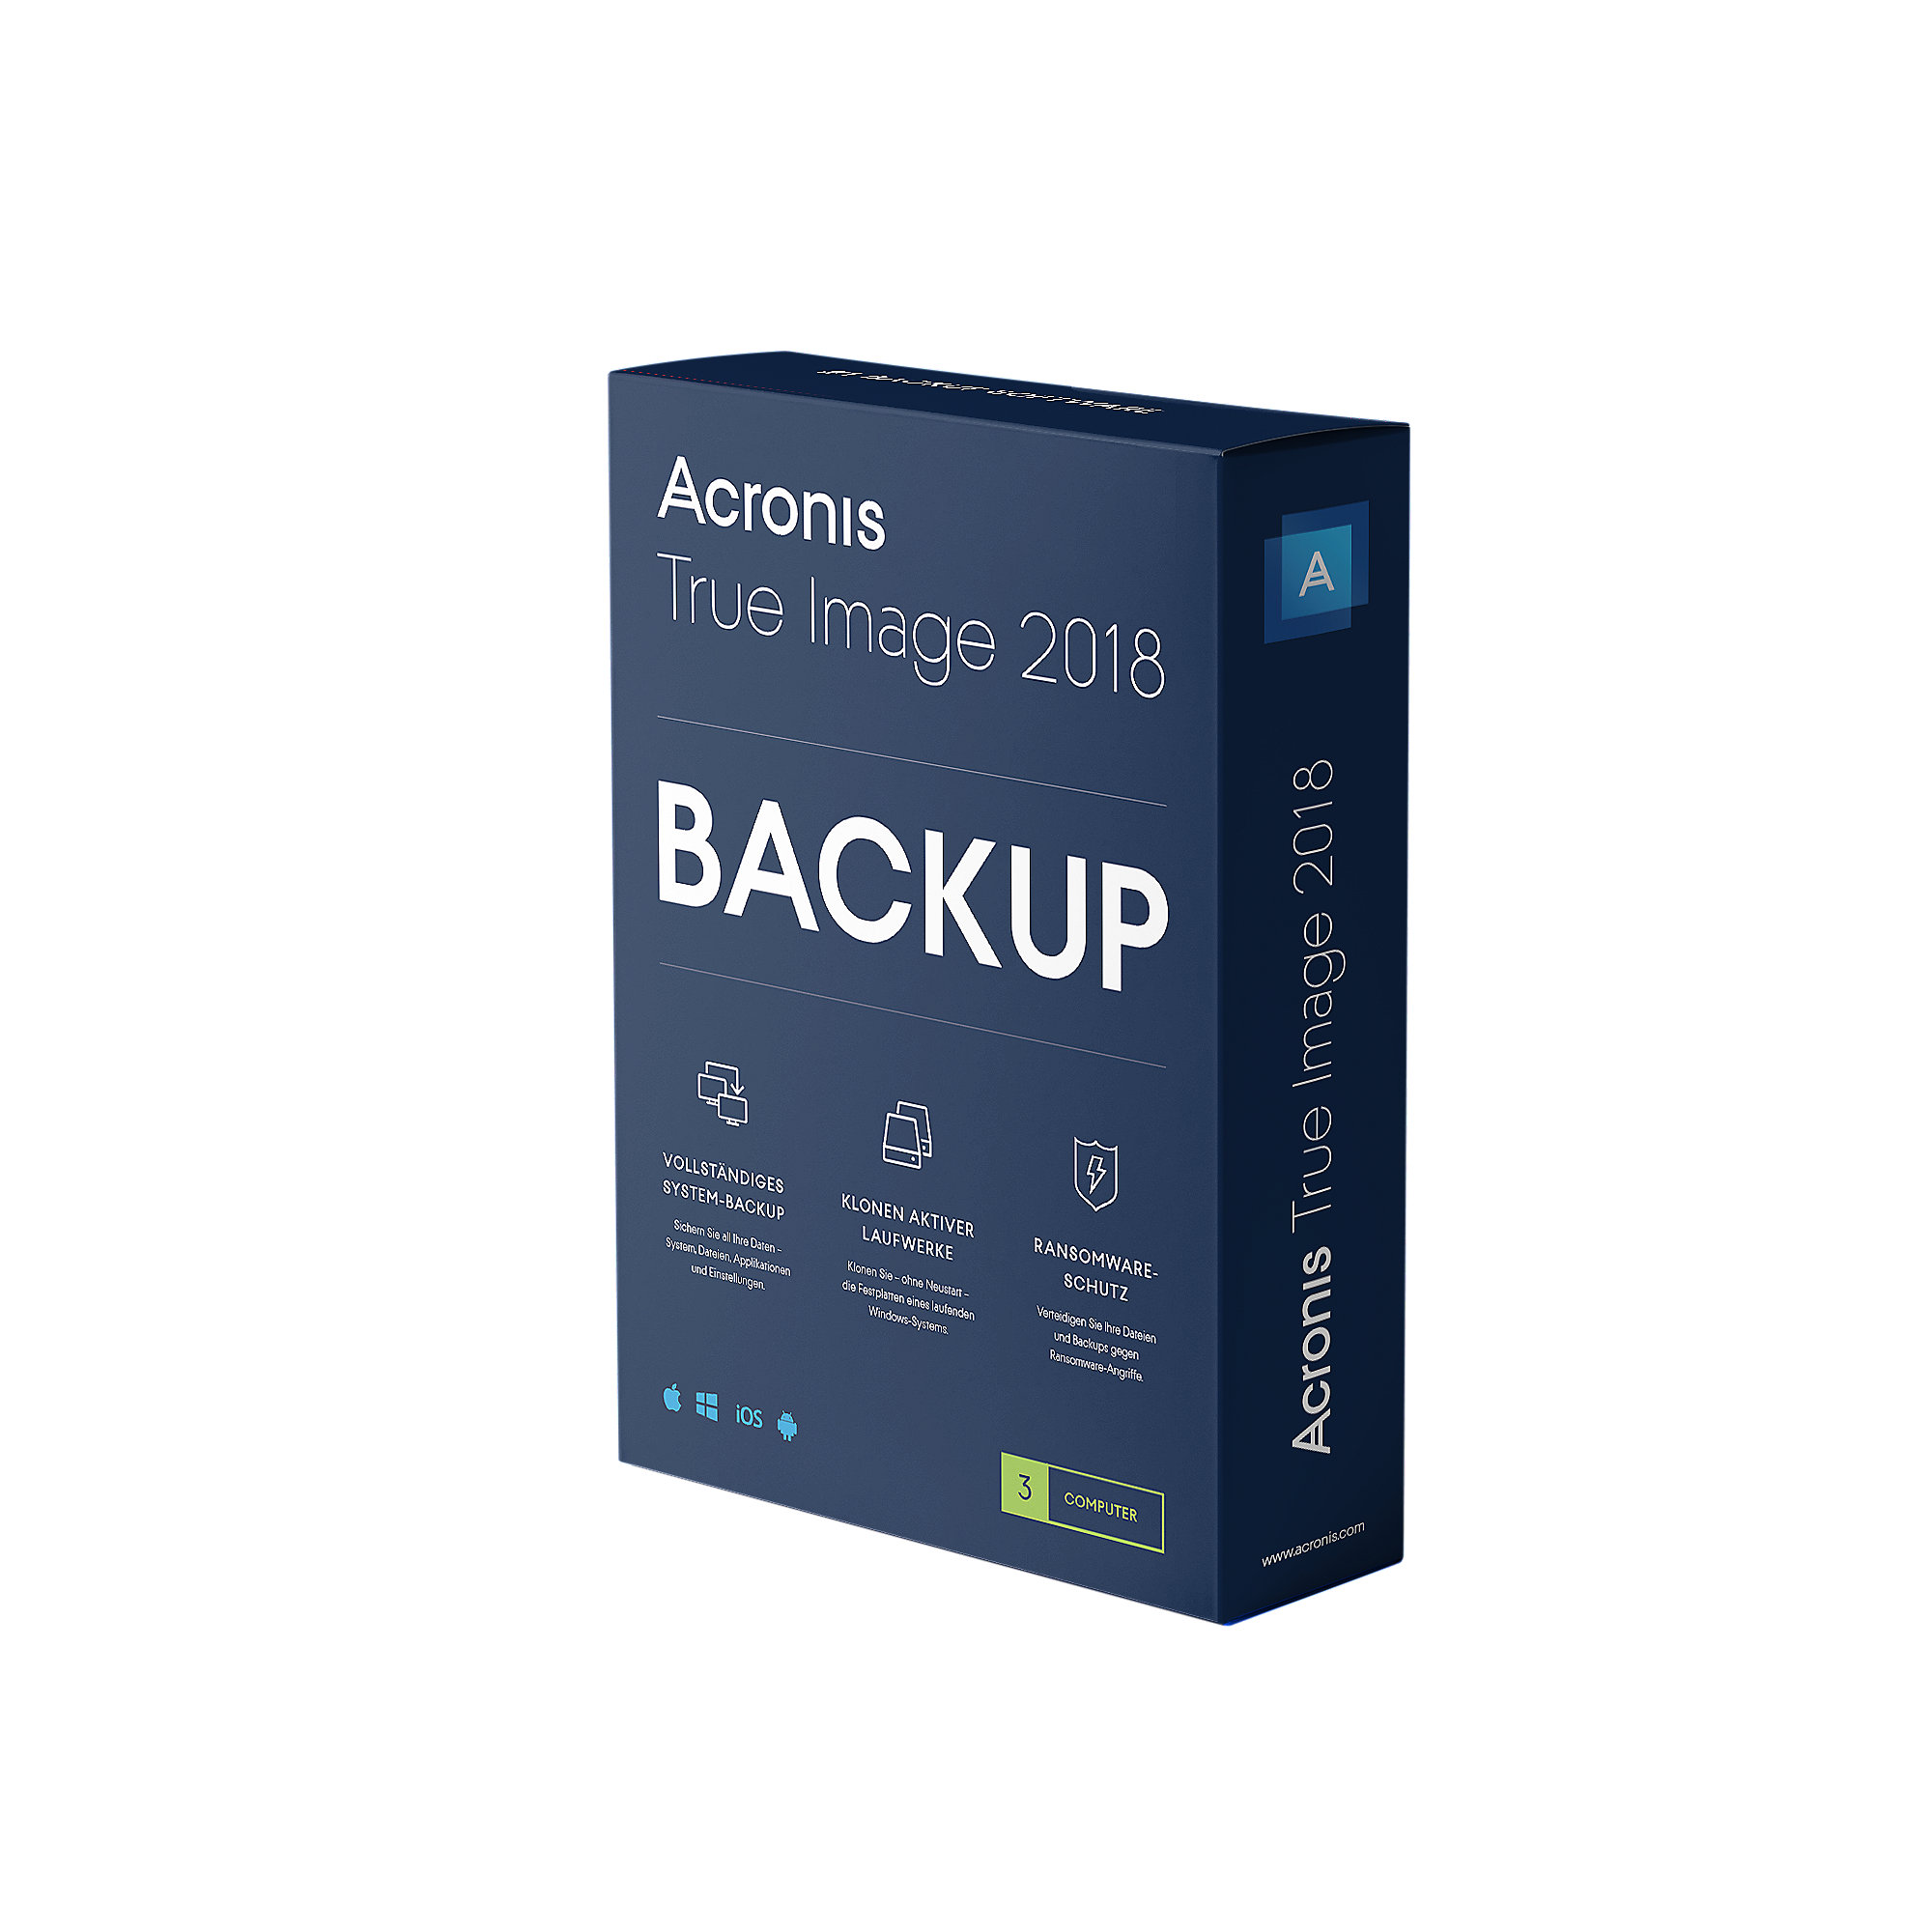 Acronis True Image 2018 3 PC MiniBox